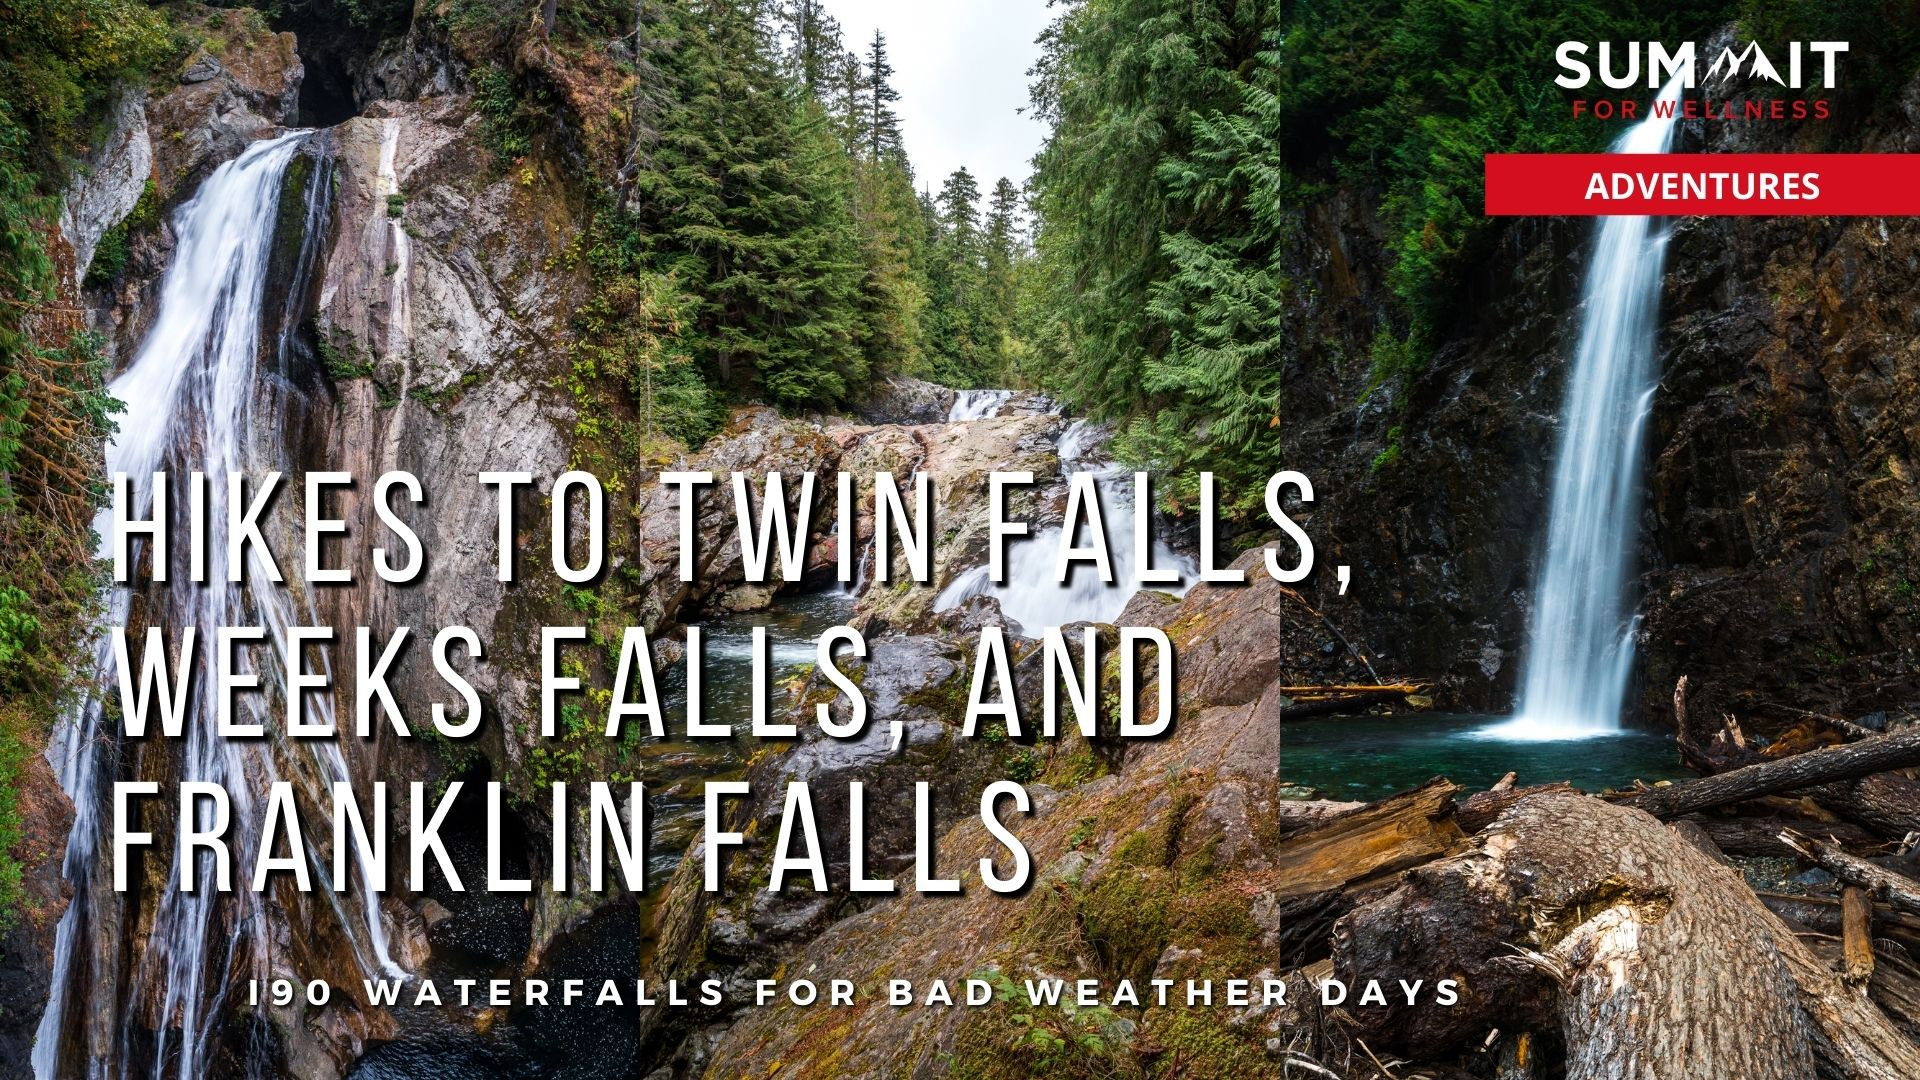 Day hike out to Twin Falls, Weeks Falls, and Franklin Falls in one day